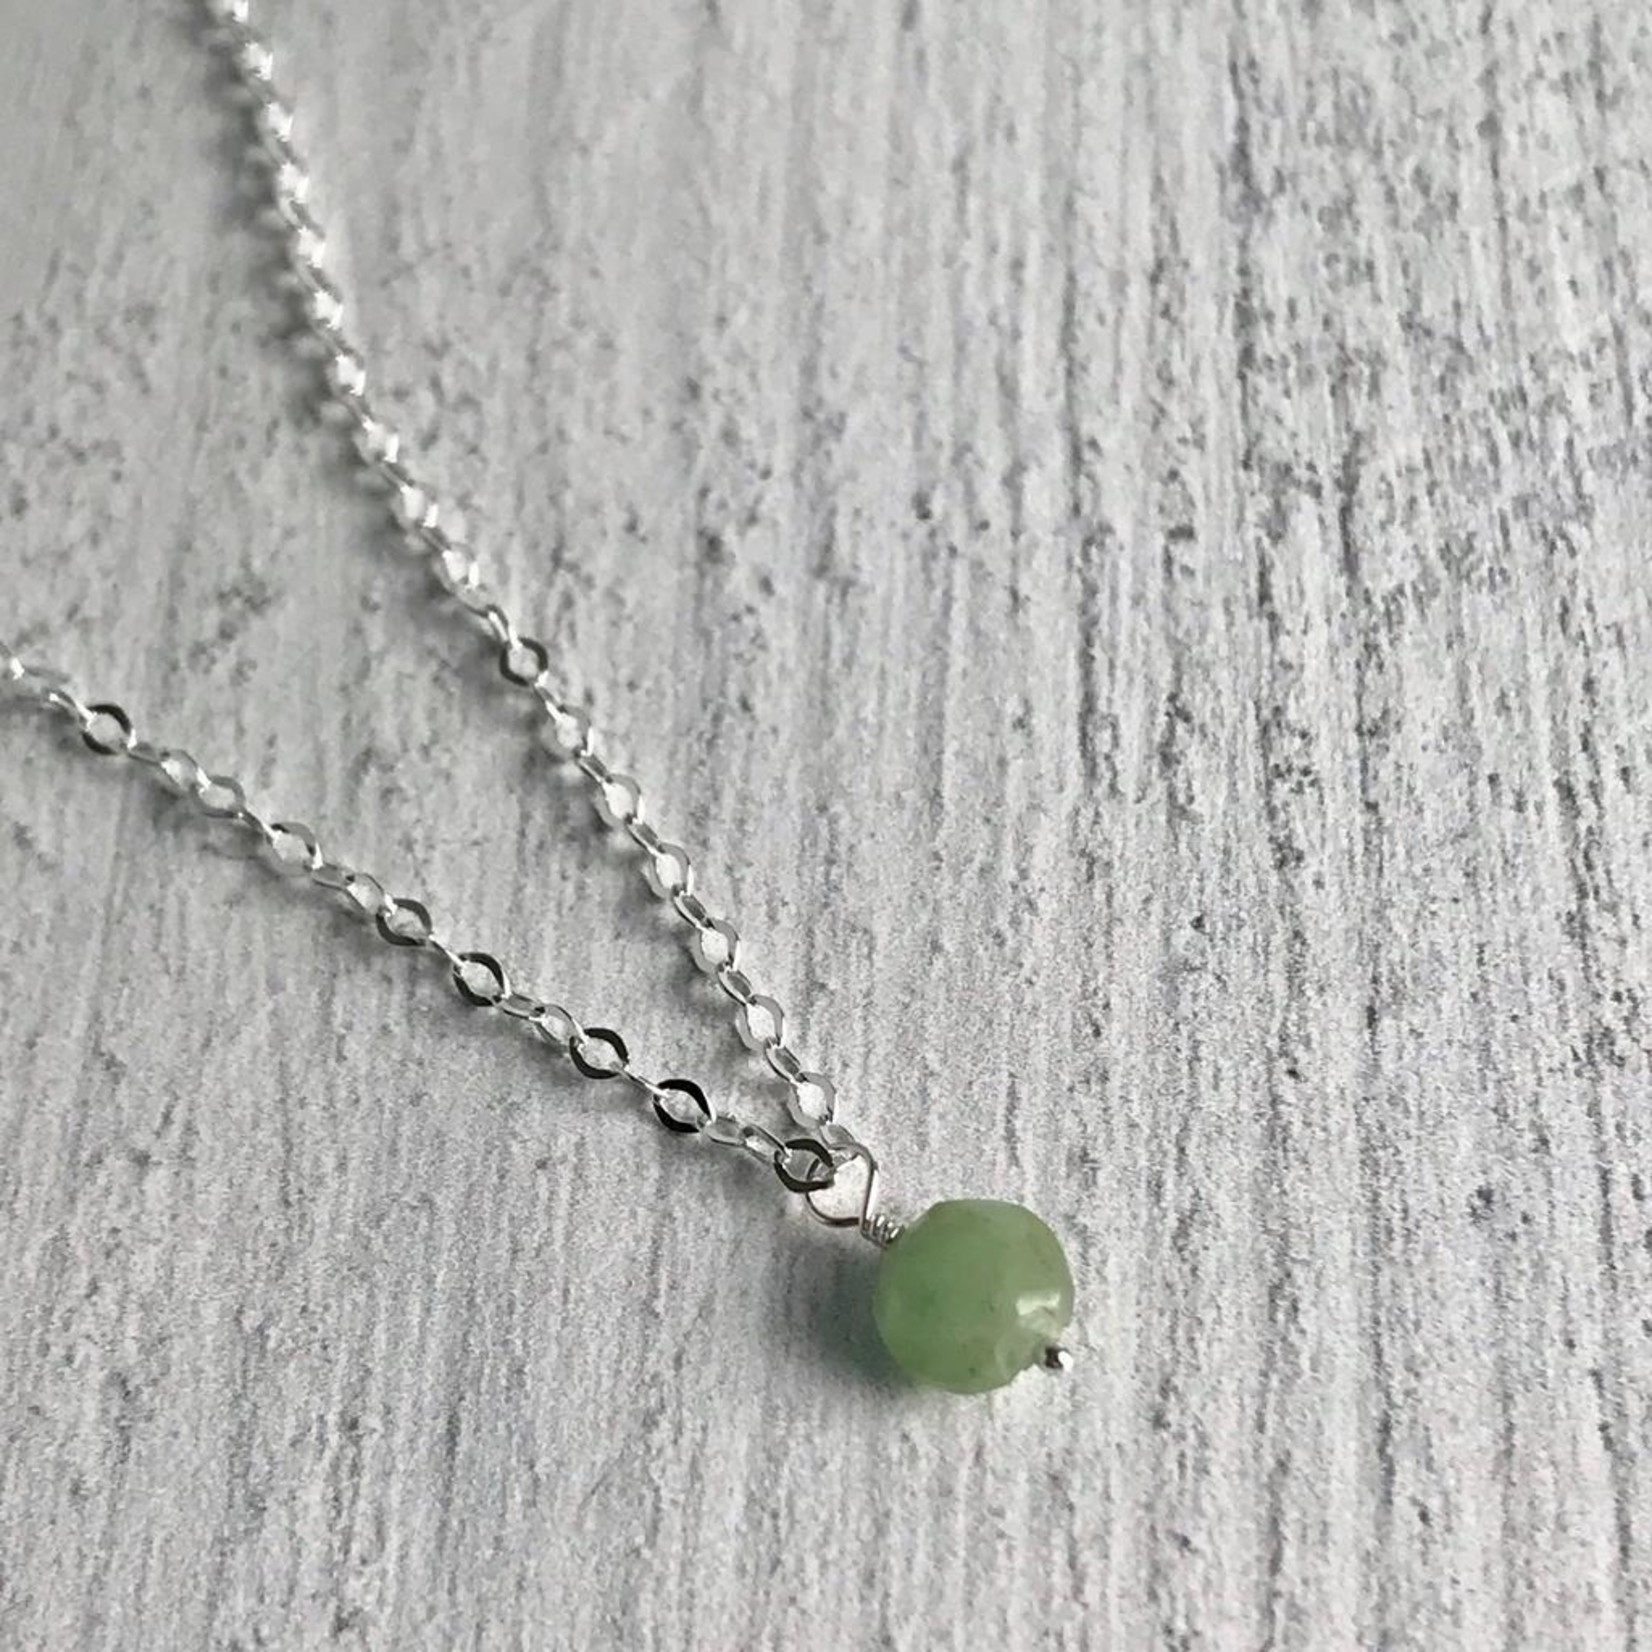 Handmade Silver Necklace with Emerald Drop